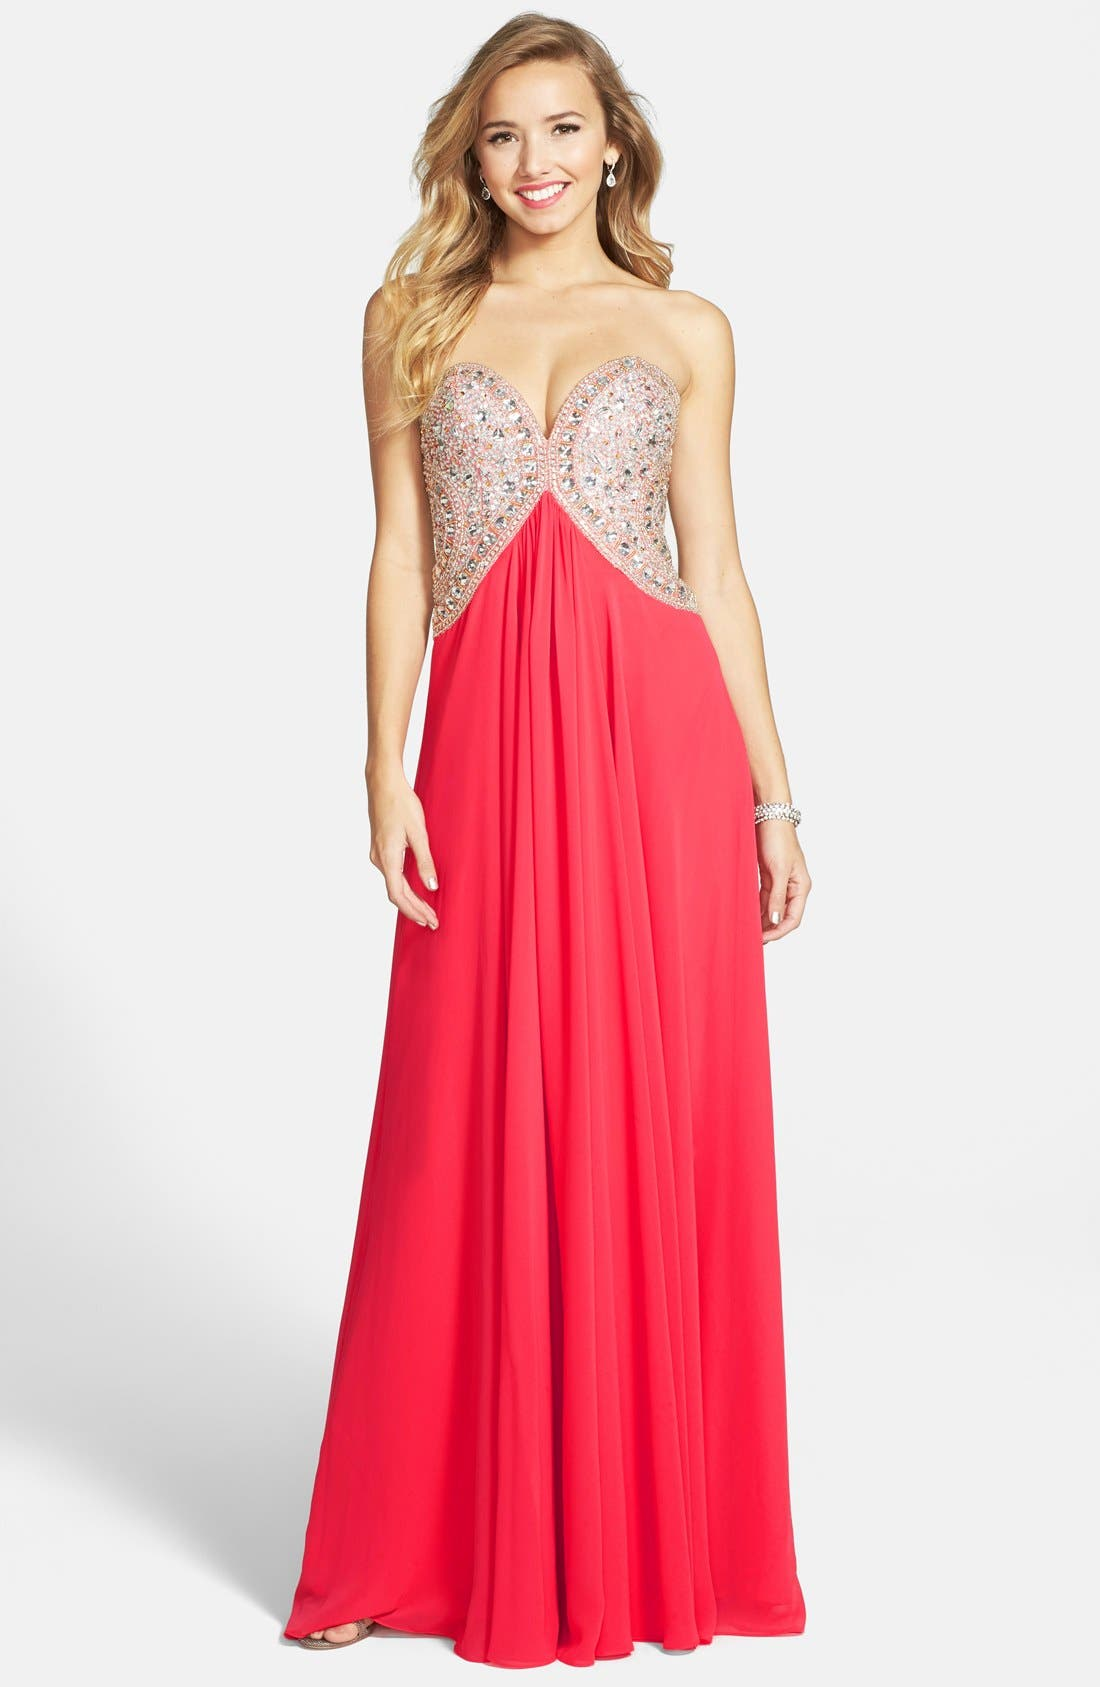 TERANI COUTURE, Embellished Bodice Strapless Chiffon Gown, Main thumbnail 1, color, 950